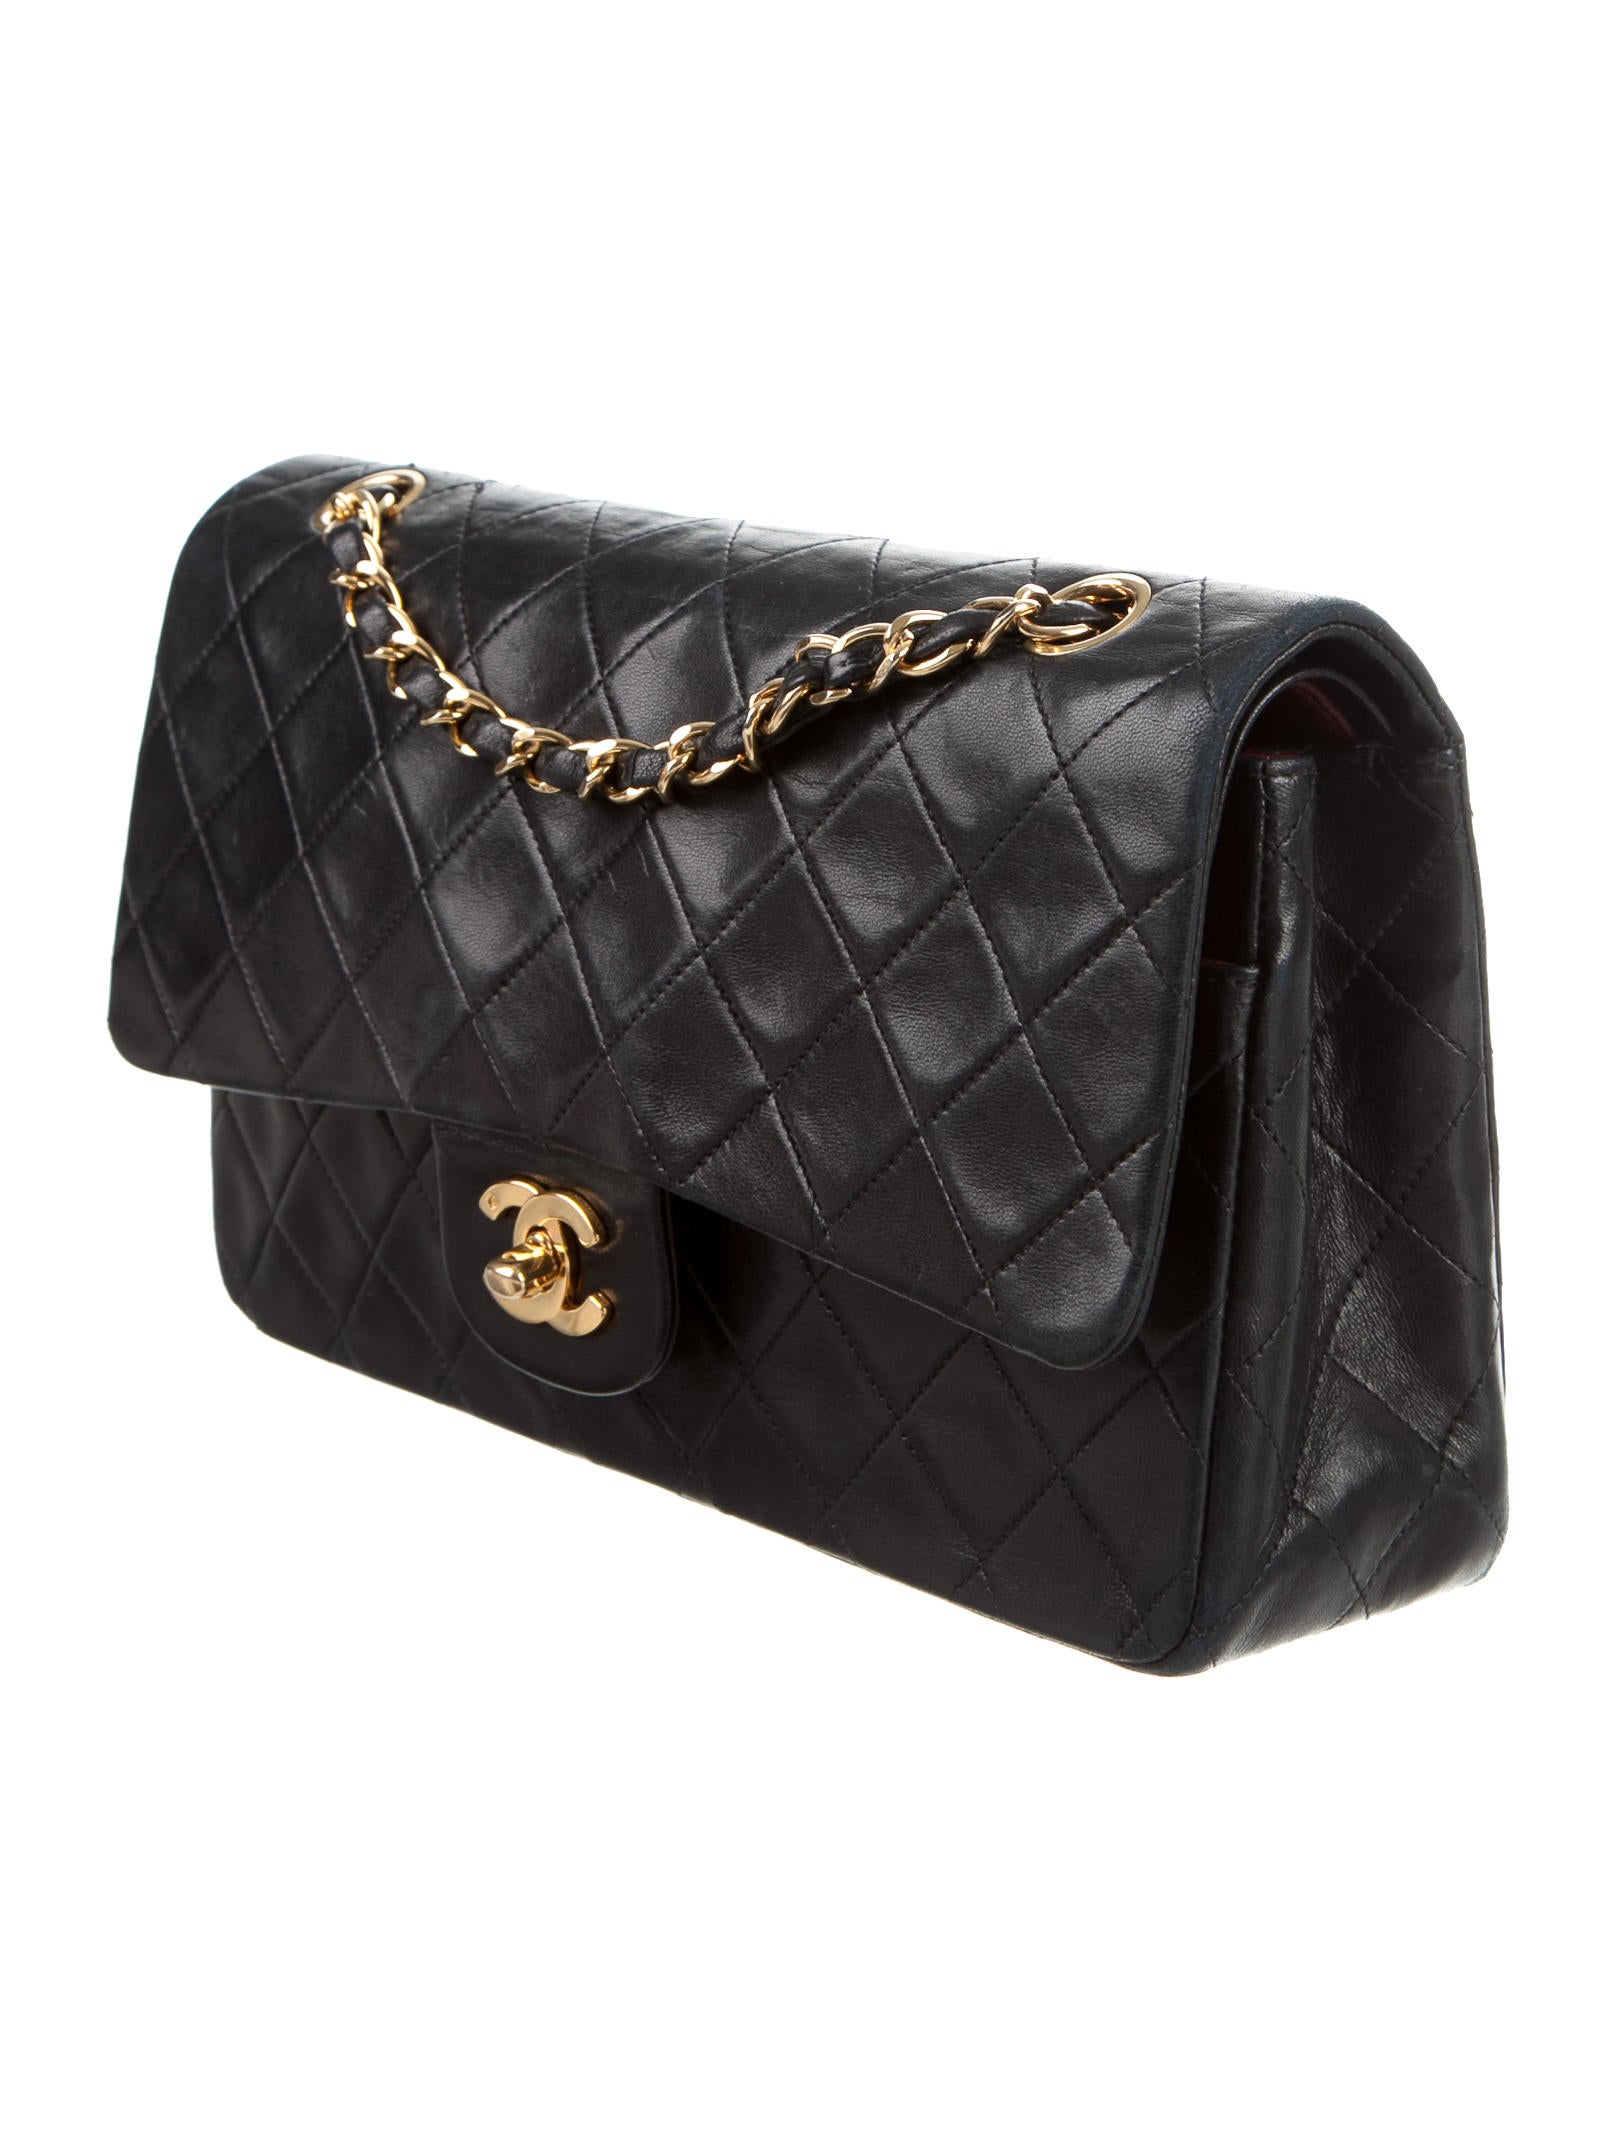 21ff270a16bae8 Chanel Classic Double Flap Bag | Stanford Center for Opportunity ...